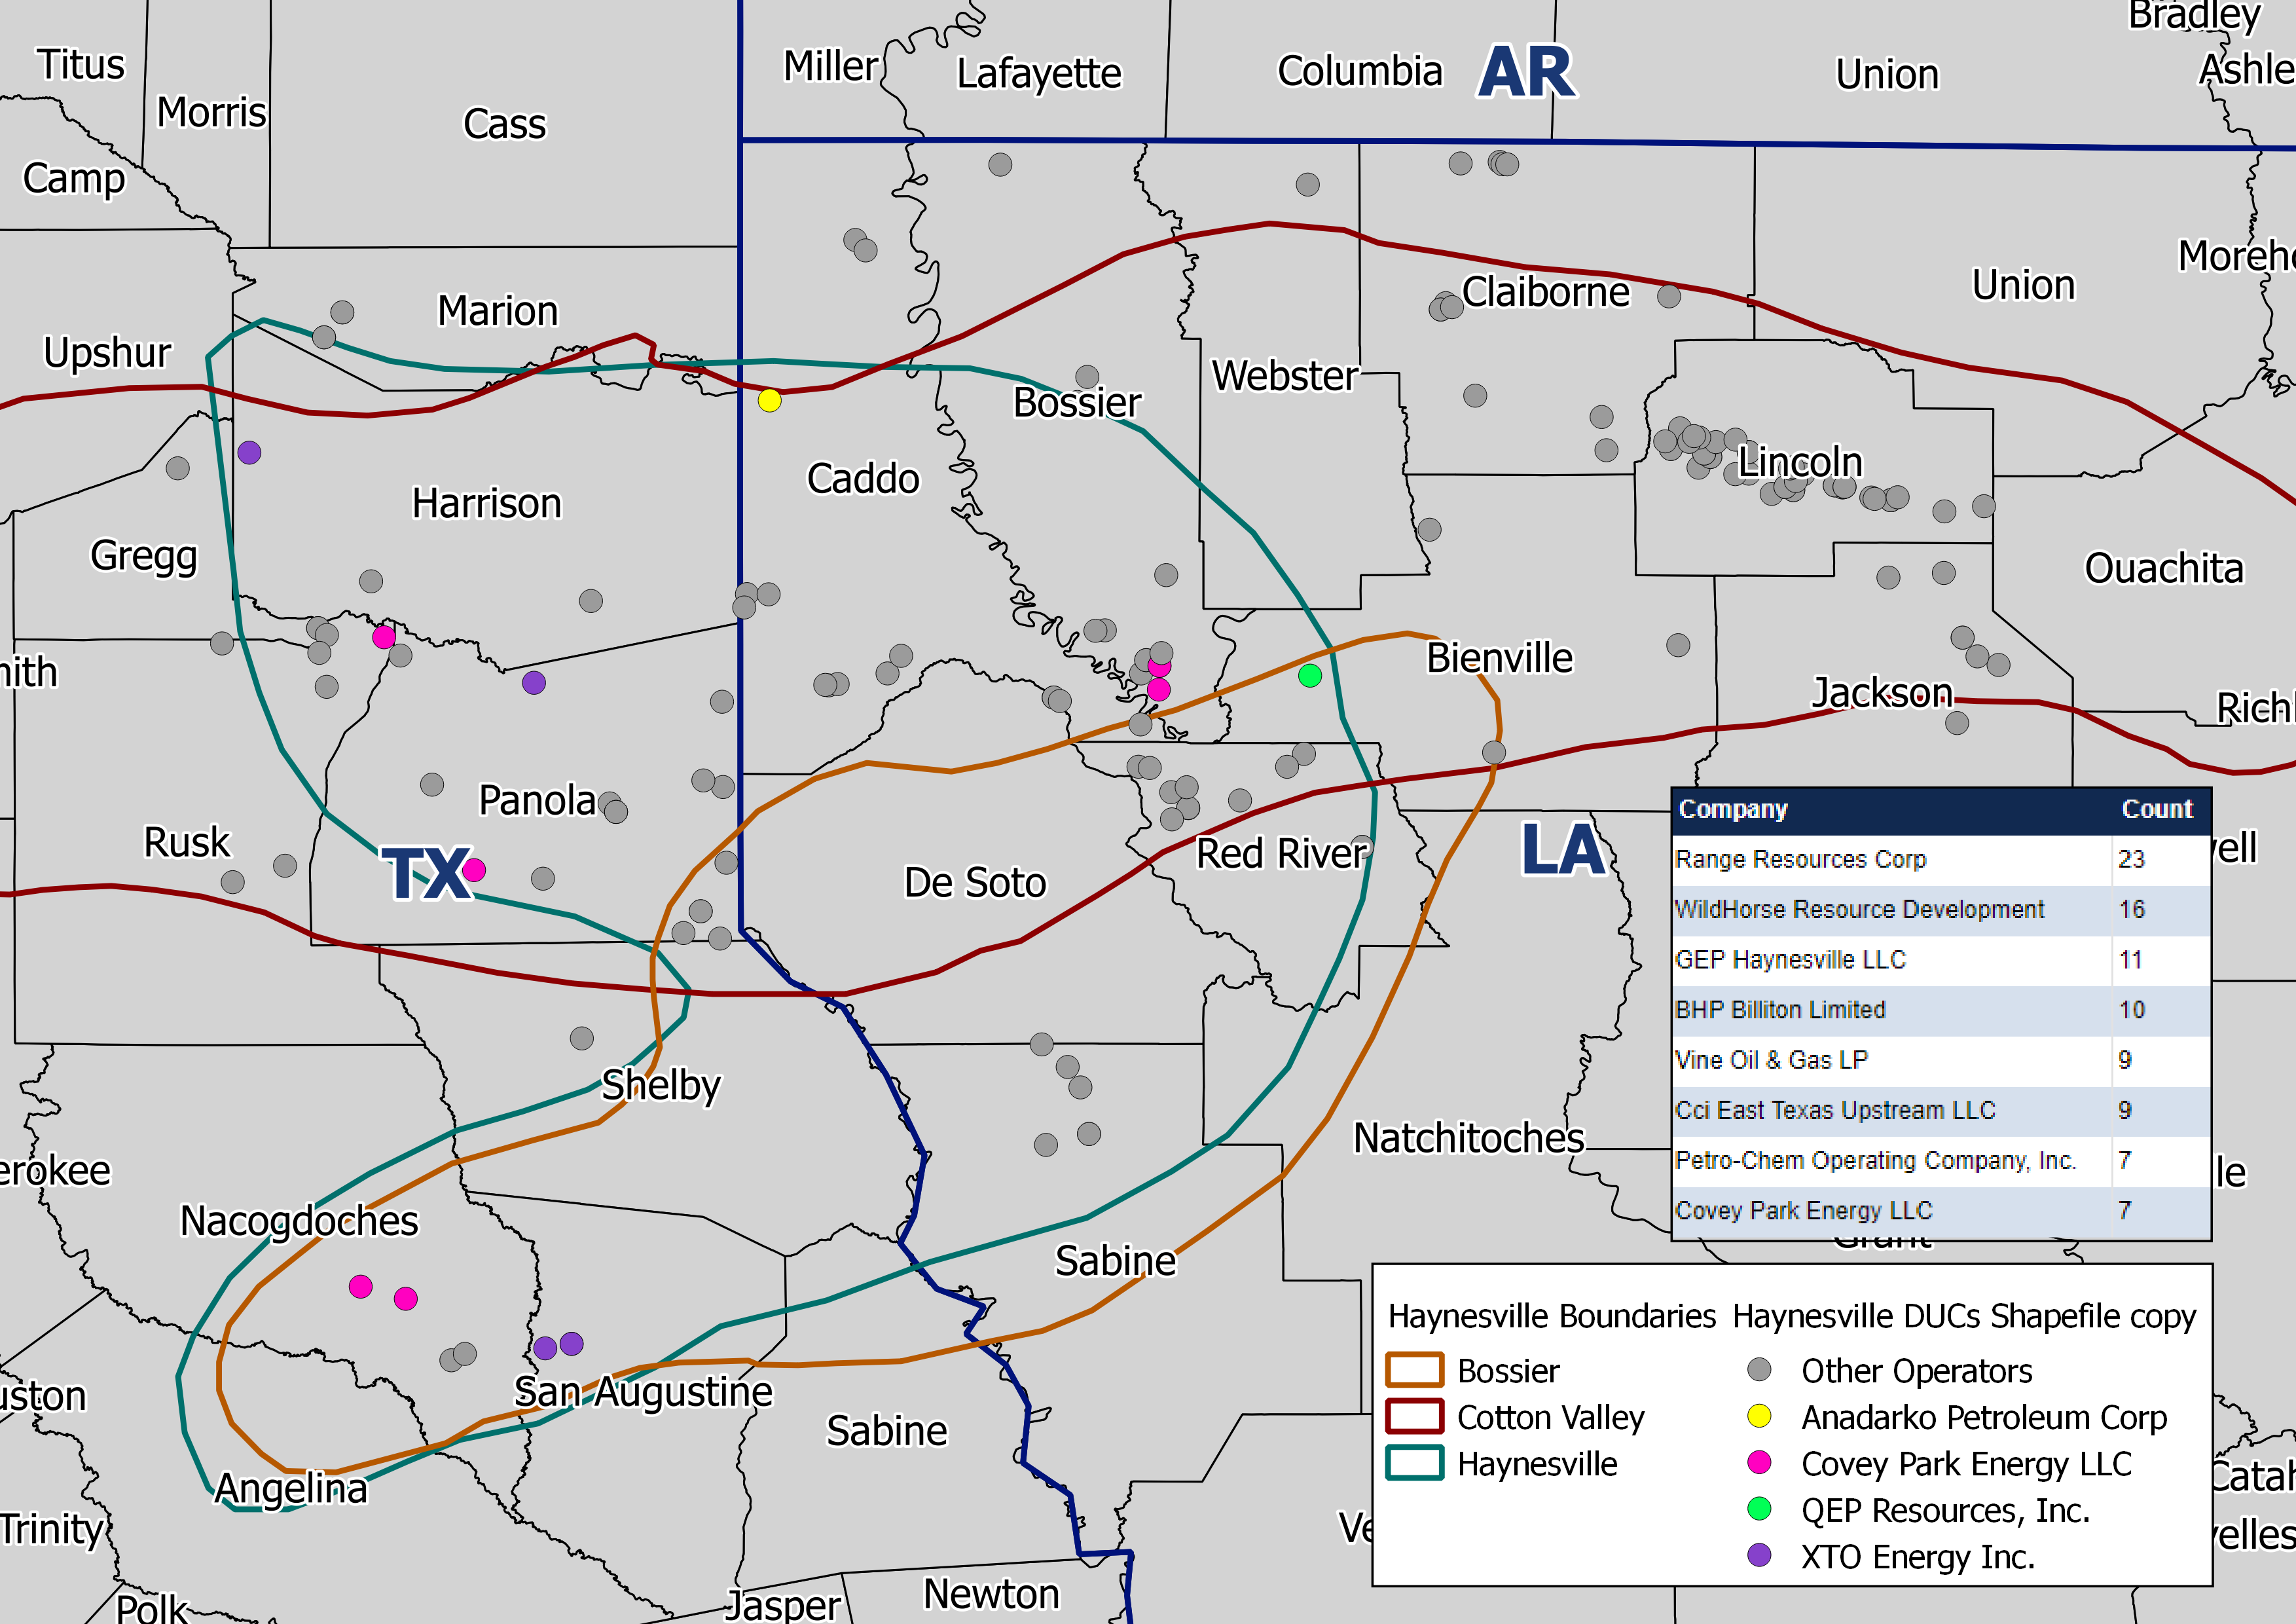 Haynesville Shale Drilled / Uncompleted (DUCs) [Count]